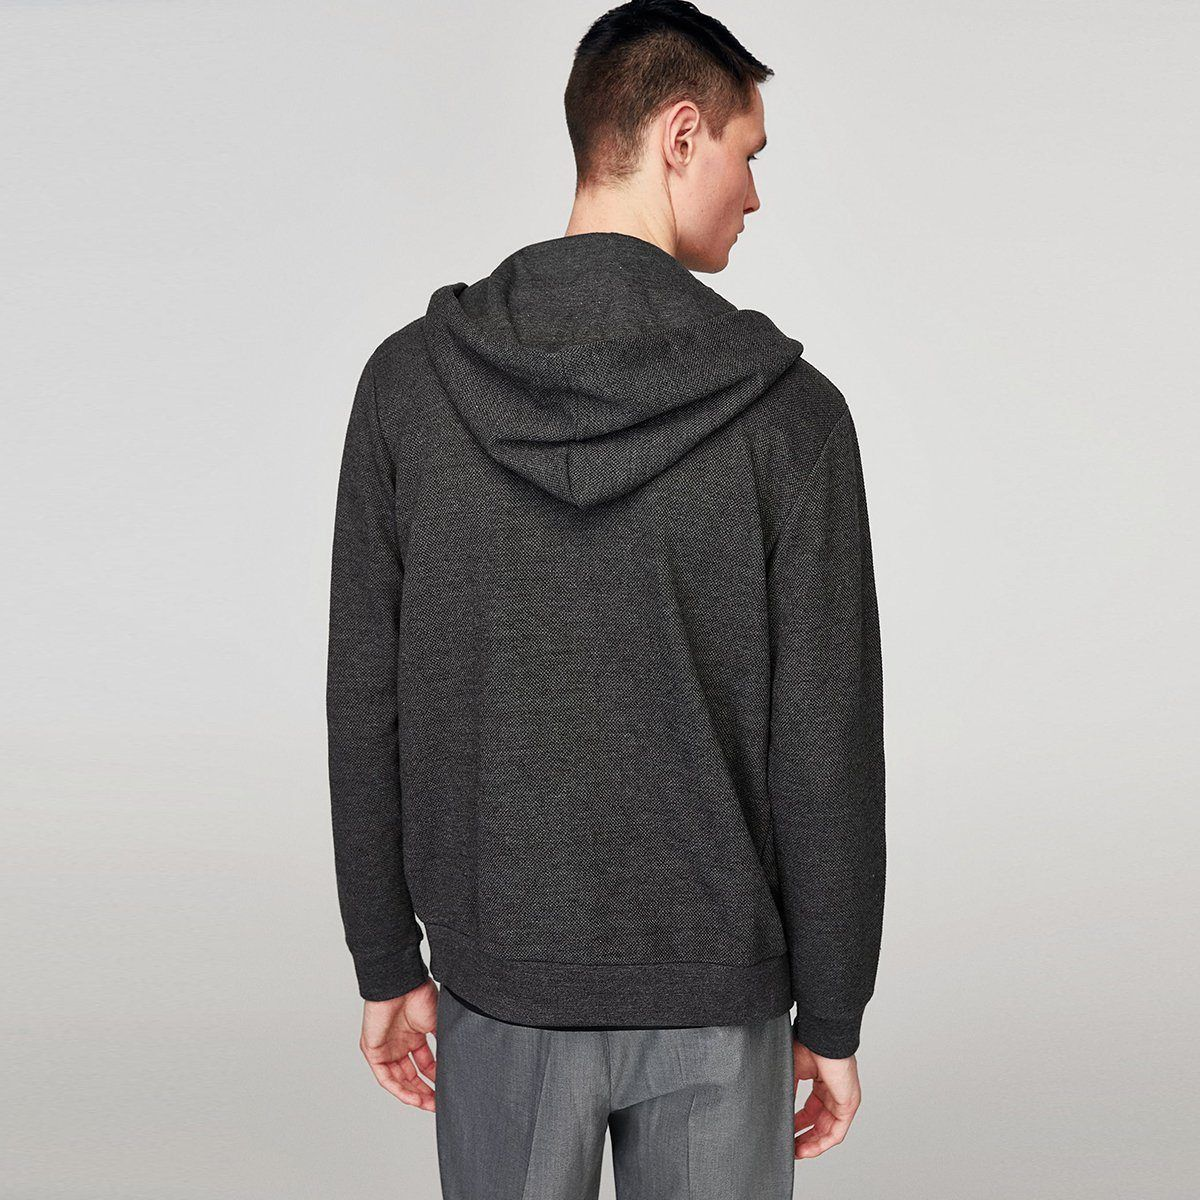 Zr exclusive anthracite grey 'slim fit' hooded sweatshirt (1491)